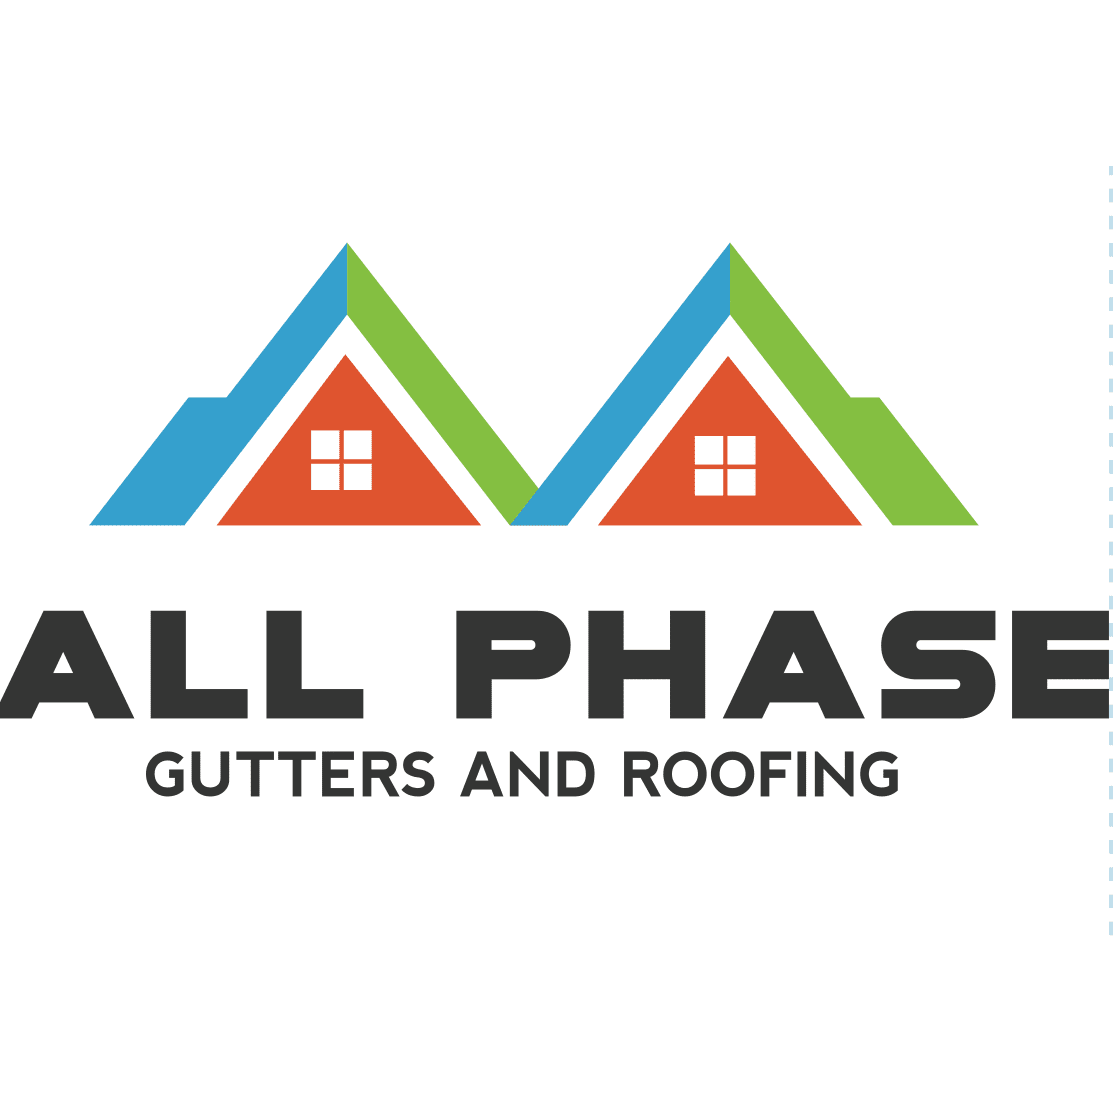 All Phase Gutters & Roofing Inc.